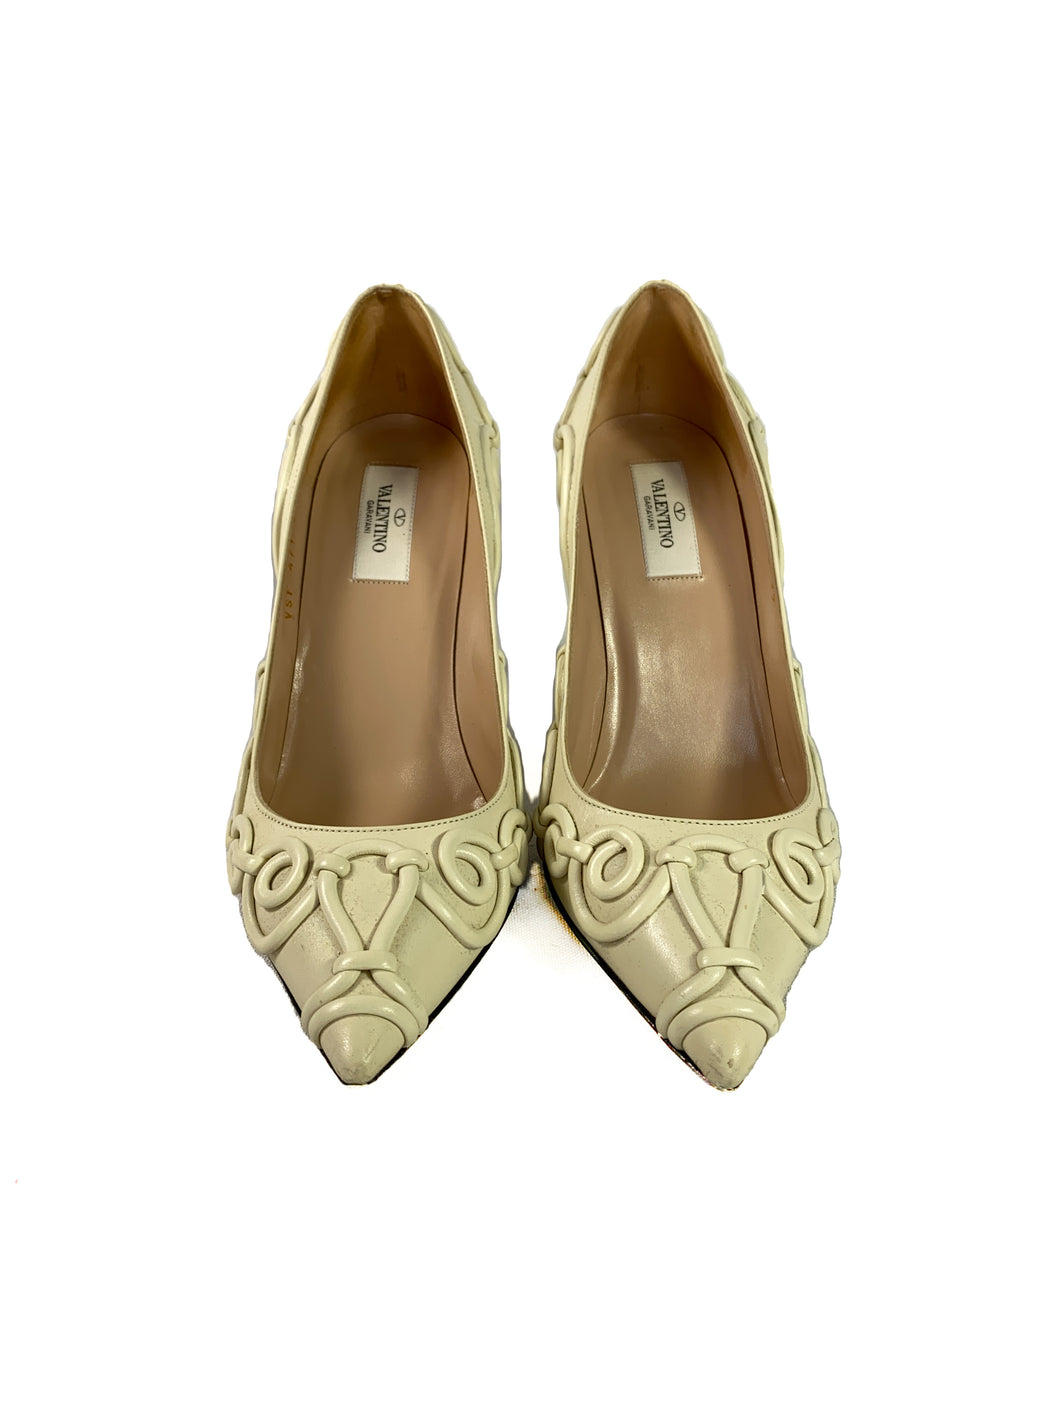 Valentino cream leather swirl pumps size 39 BOX